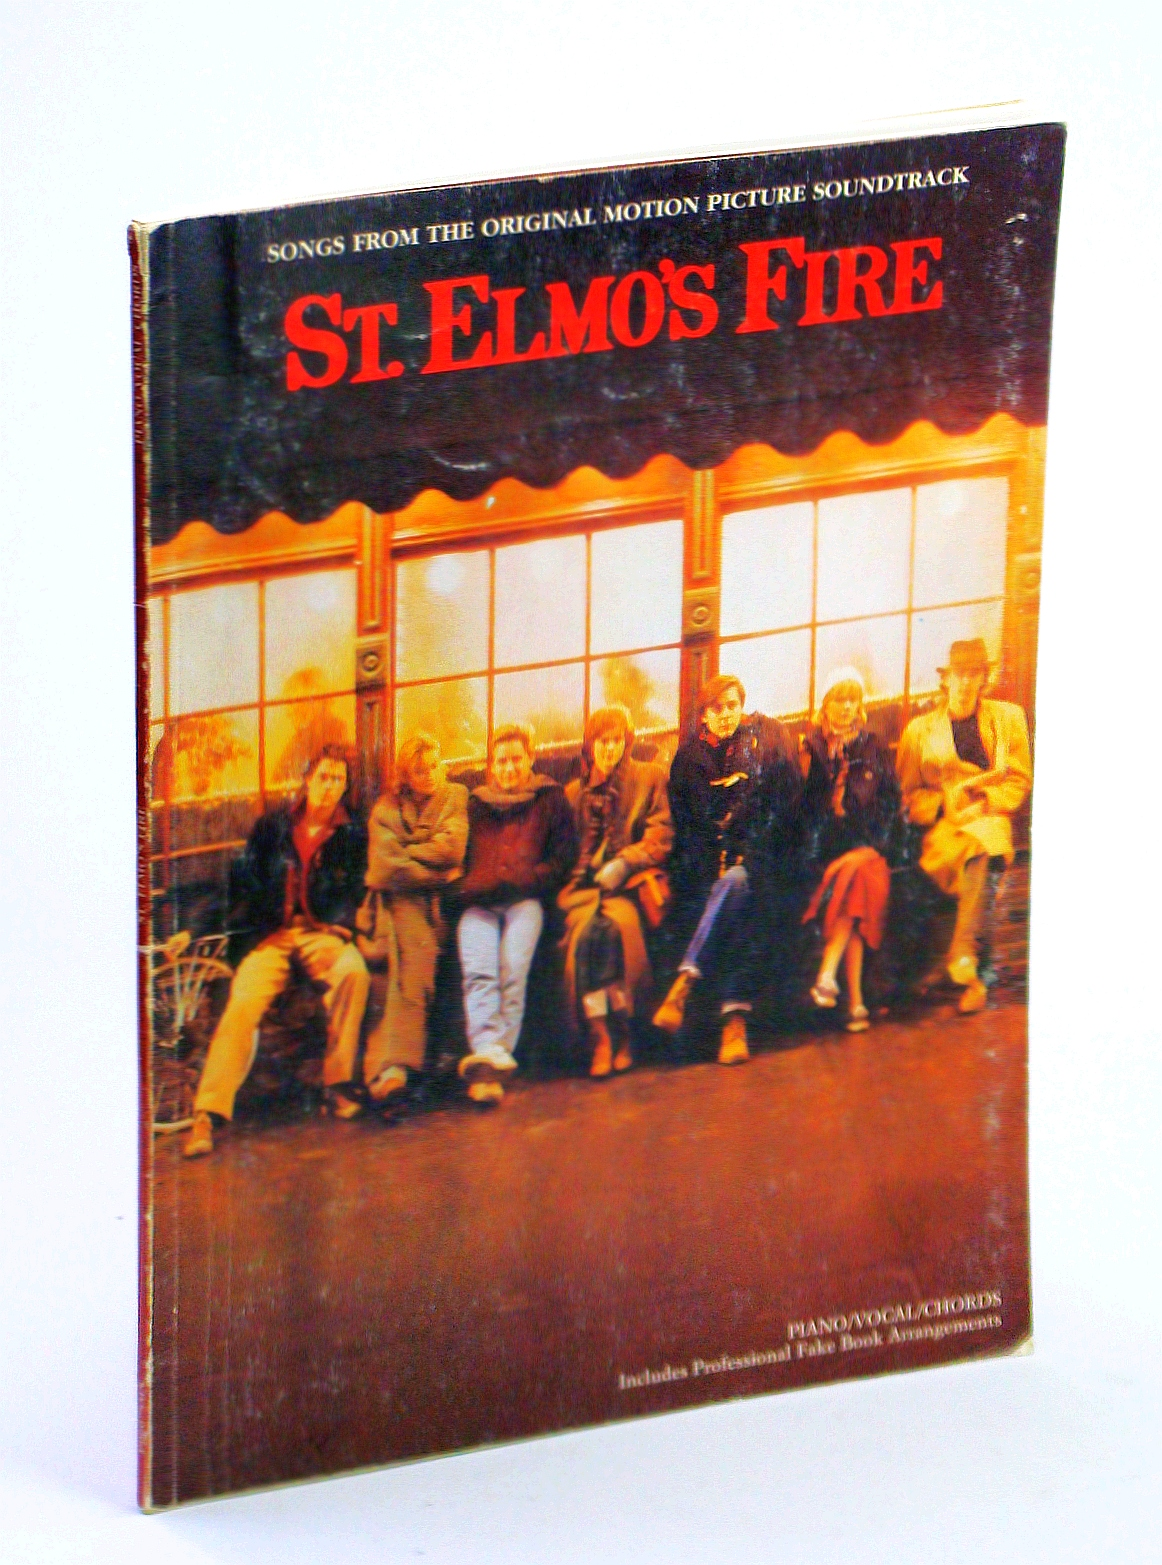 Image for Songs from the Original Motion Picture Soundtrack - St. Elmo's Fire - Piano/Vocal/Chords - Includes Professional Fake Book Arrangements